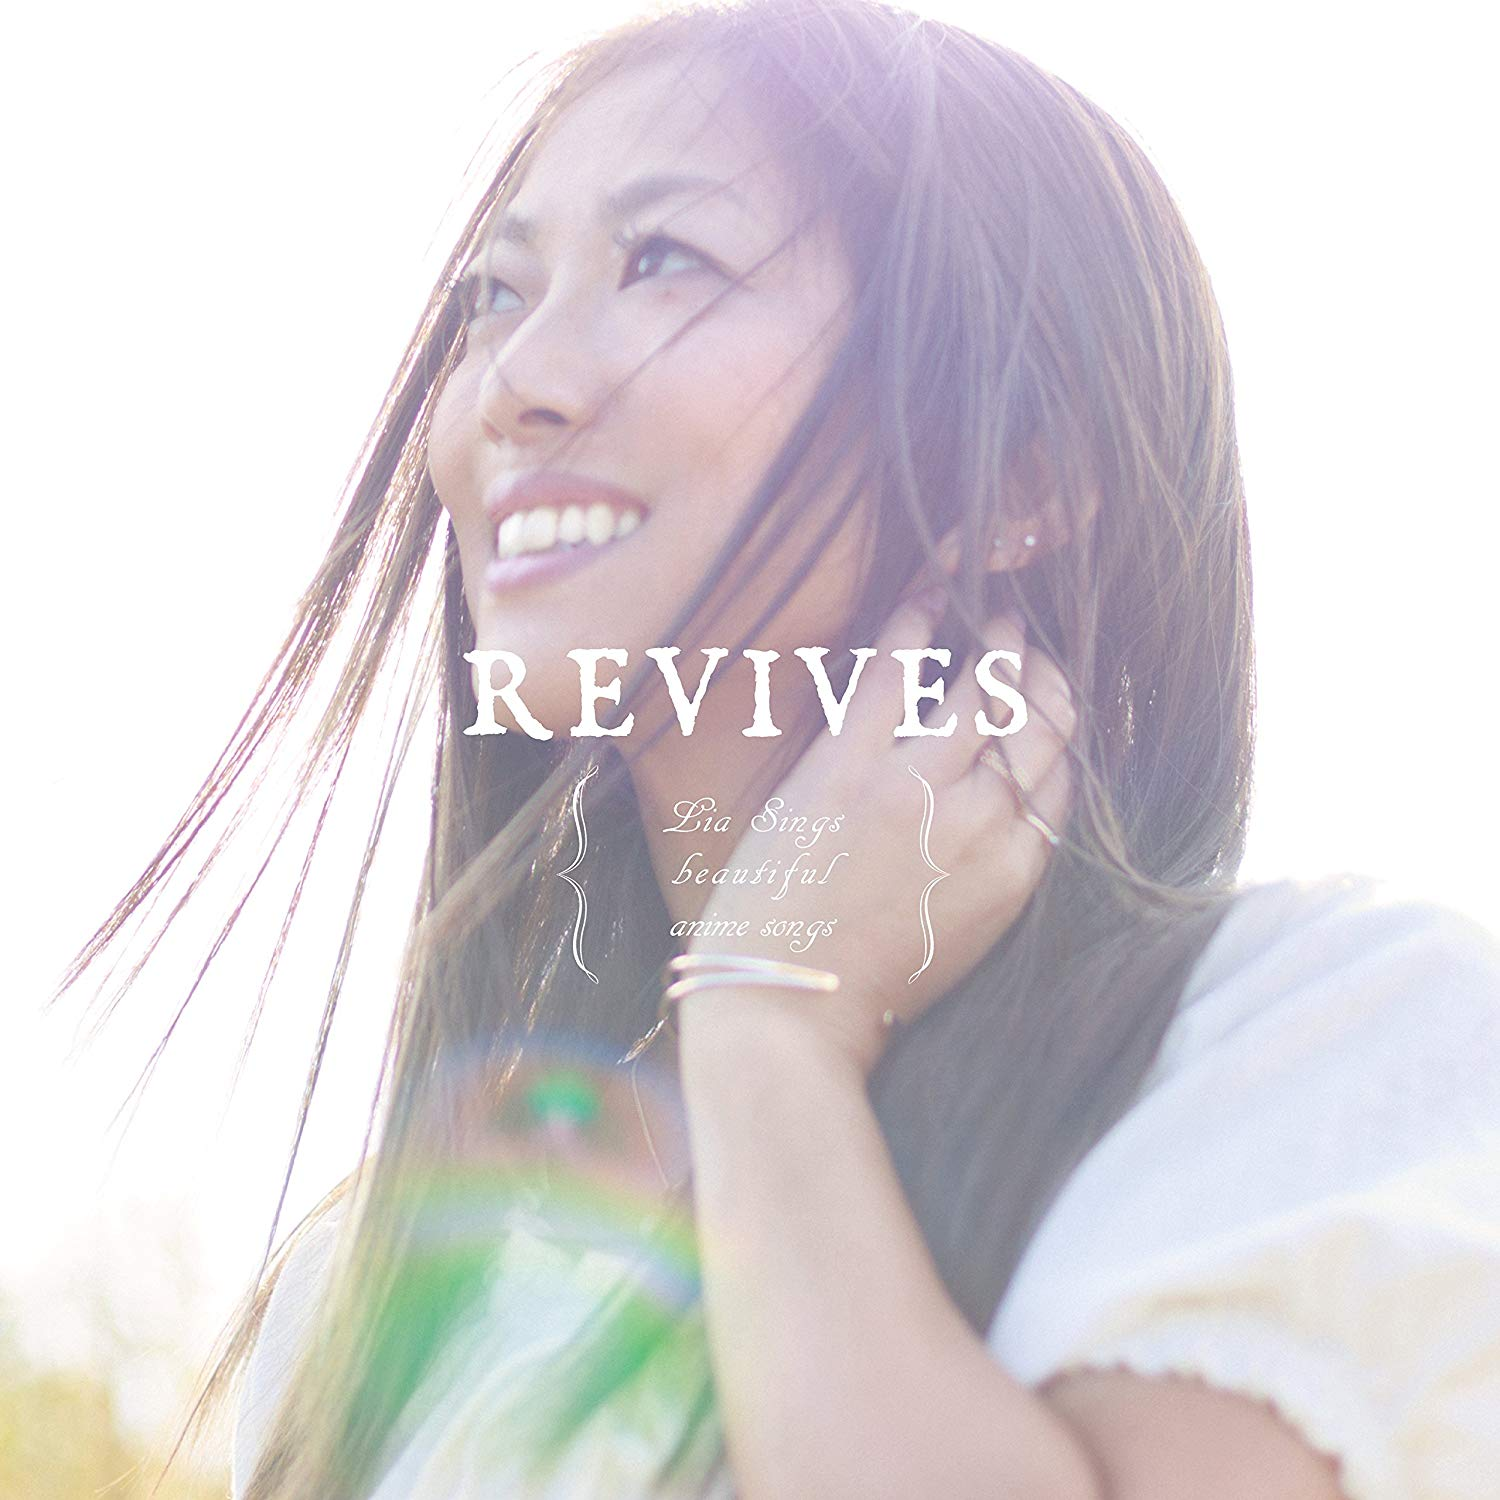 『REVIVES -Lia Sings beautiful anime songs-』